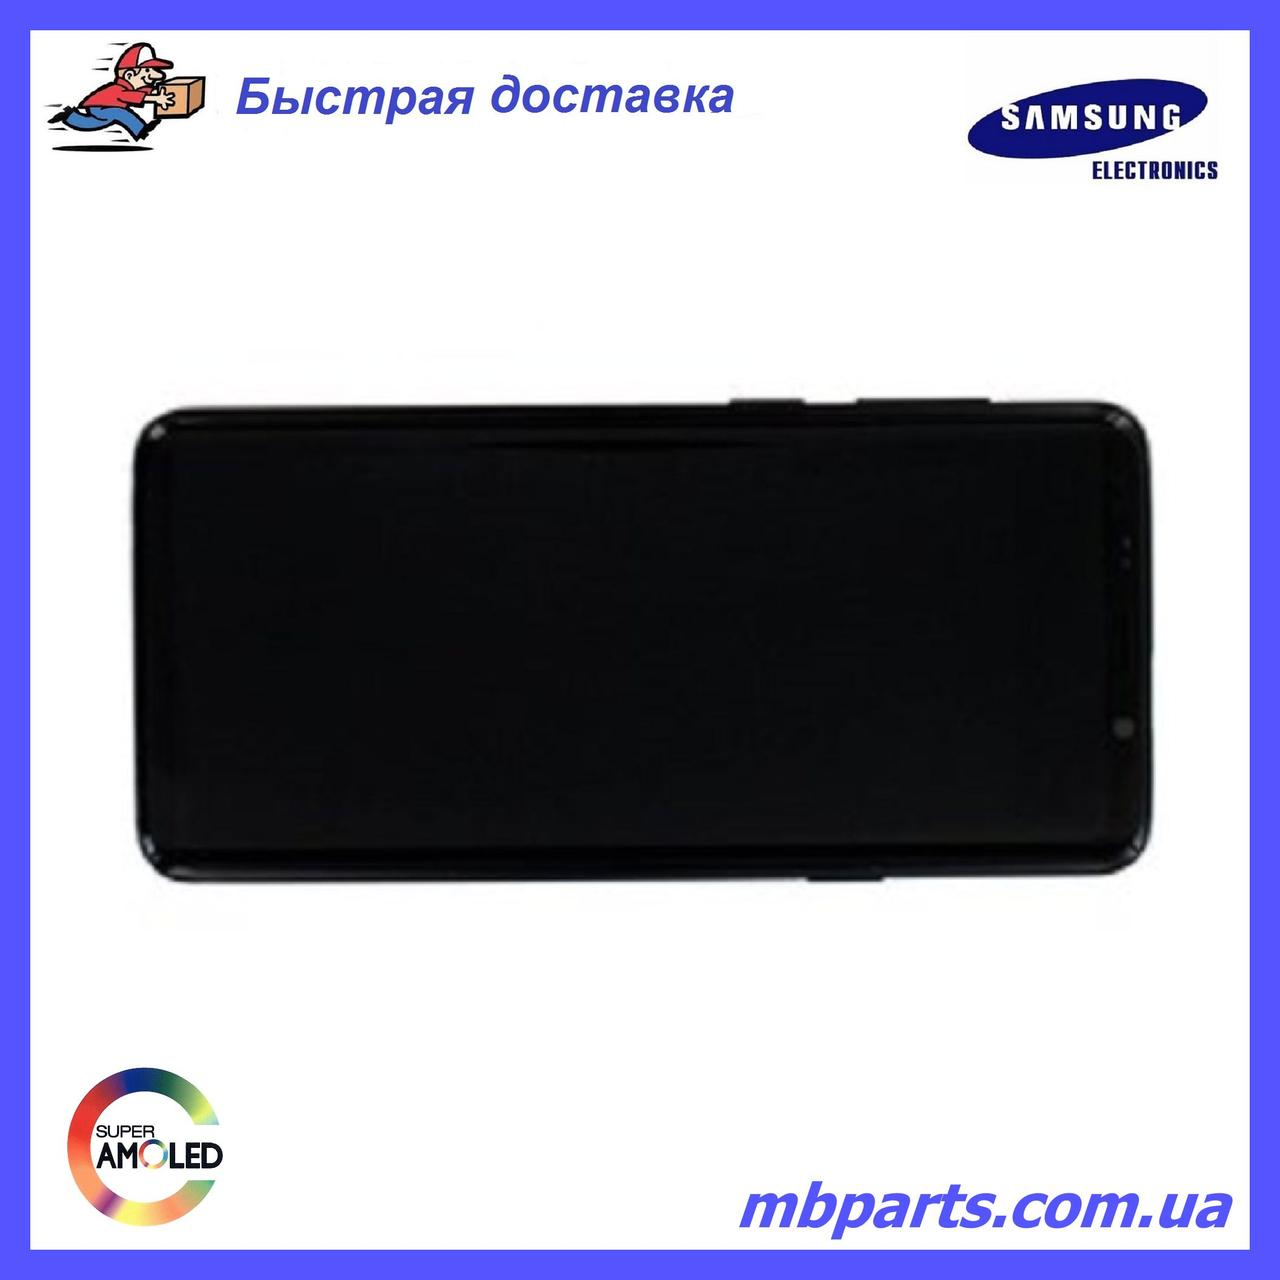 Дисплей с сенсором Samsung G965 Galaxy S9 plus Black, GH97-21691A